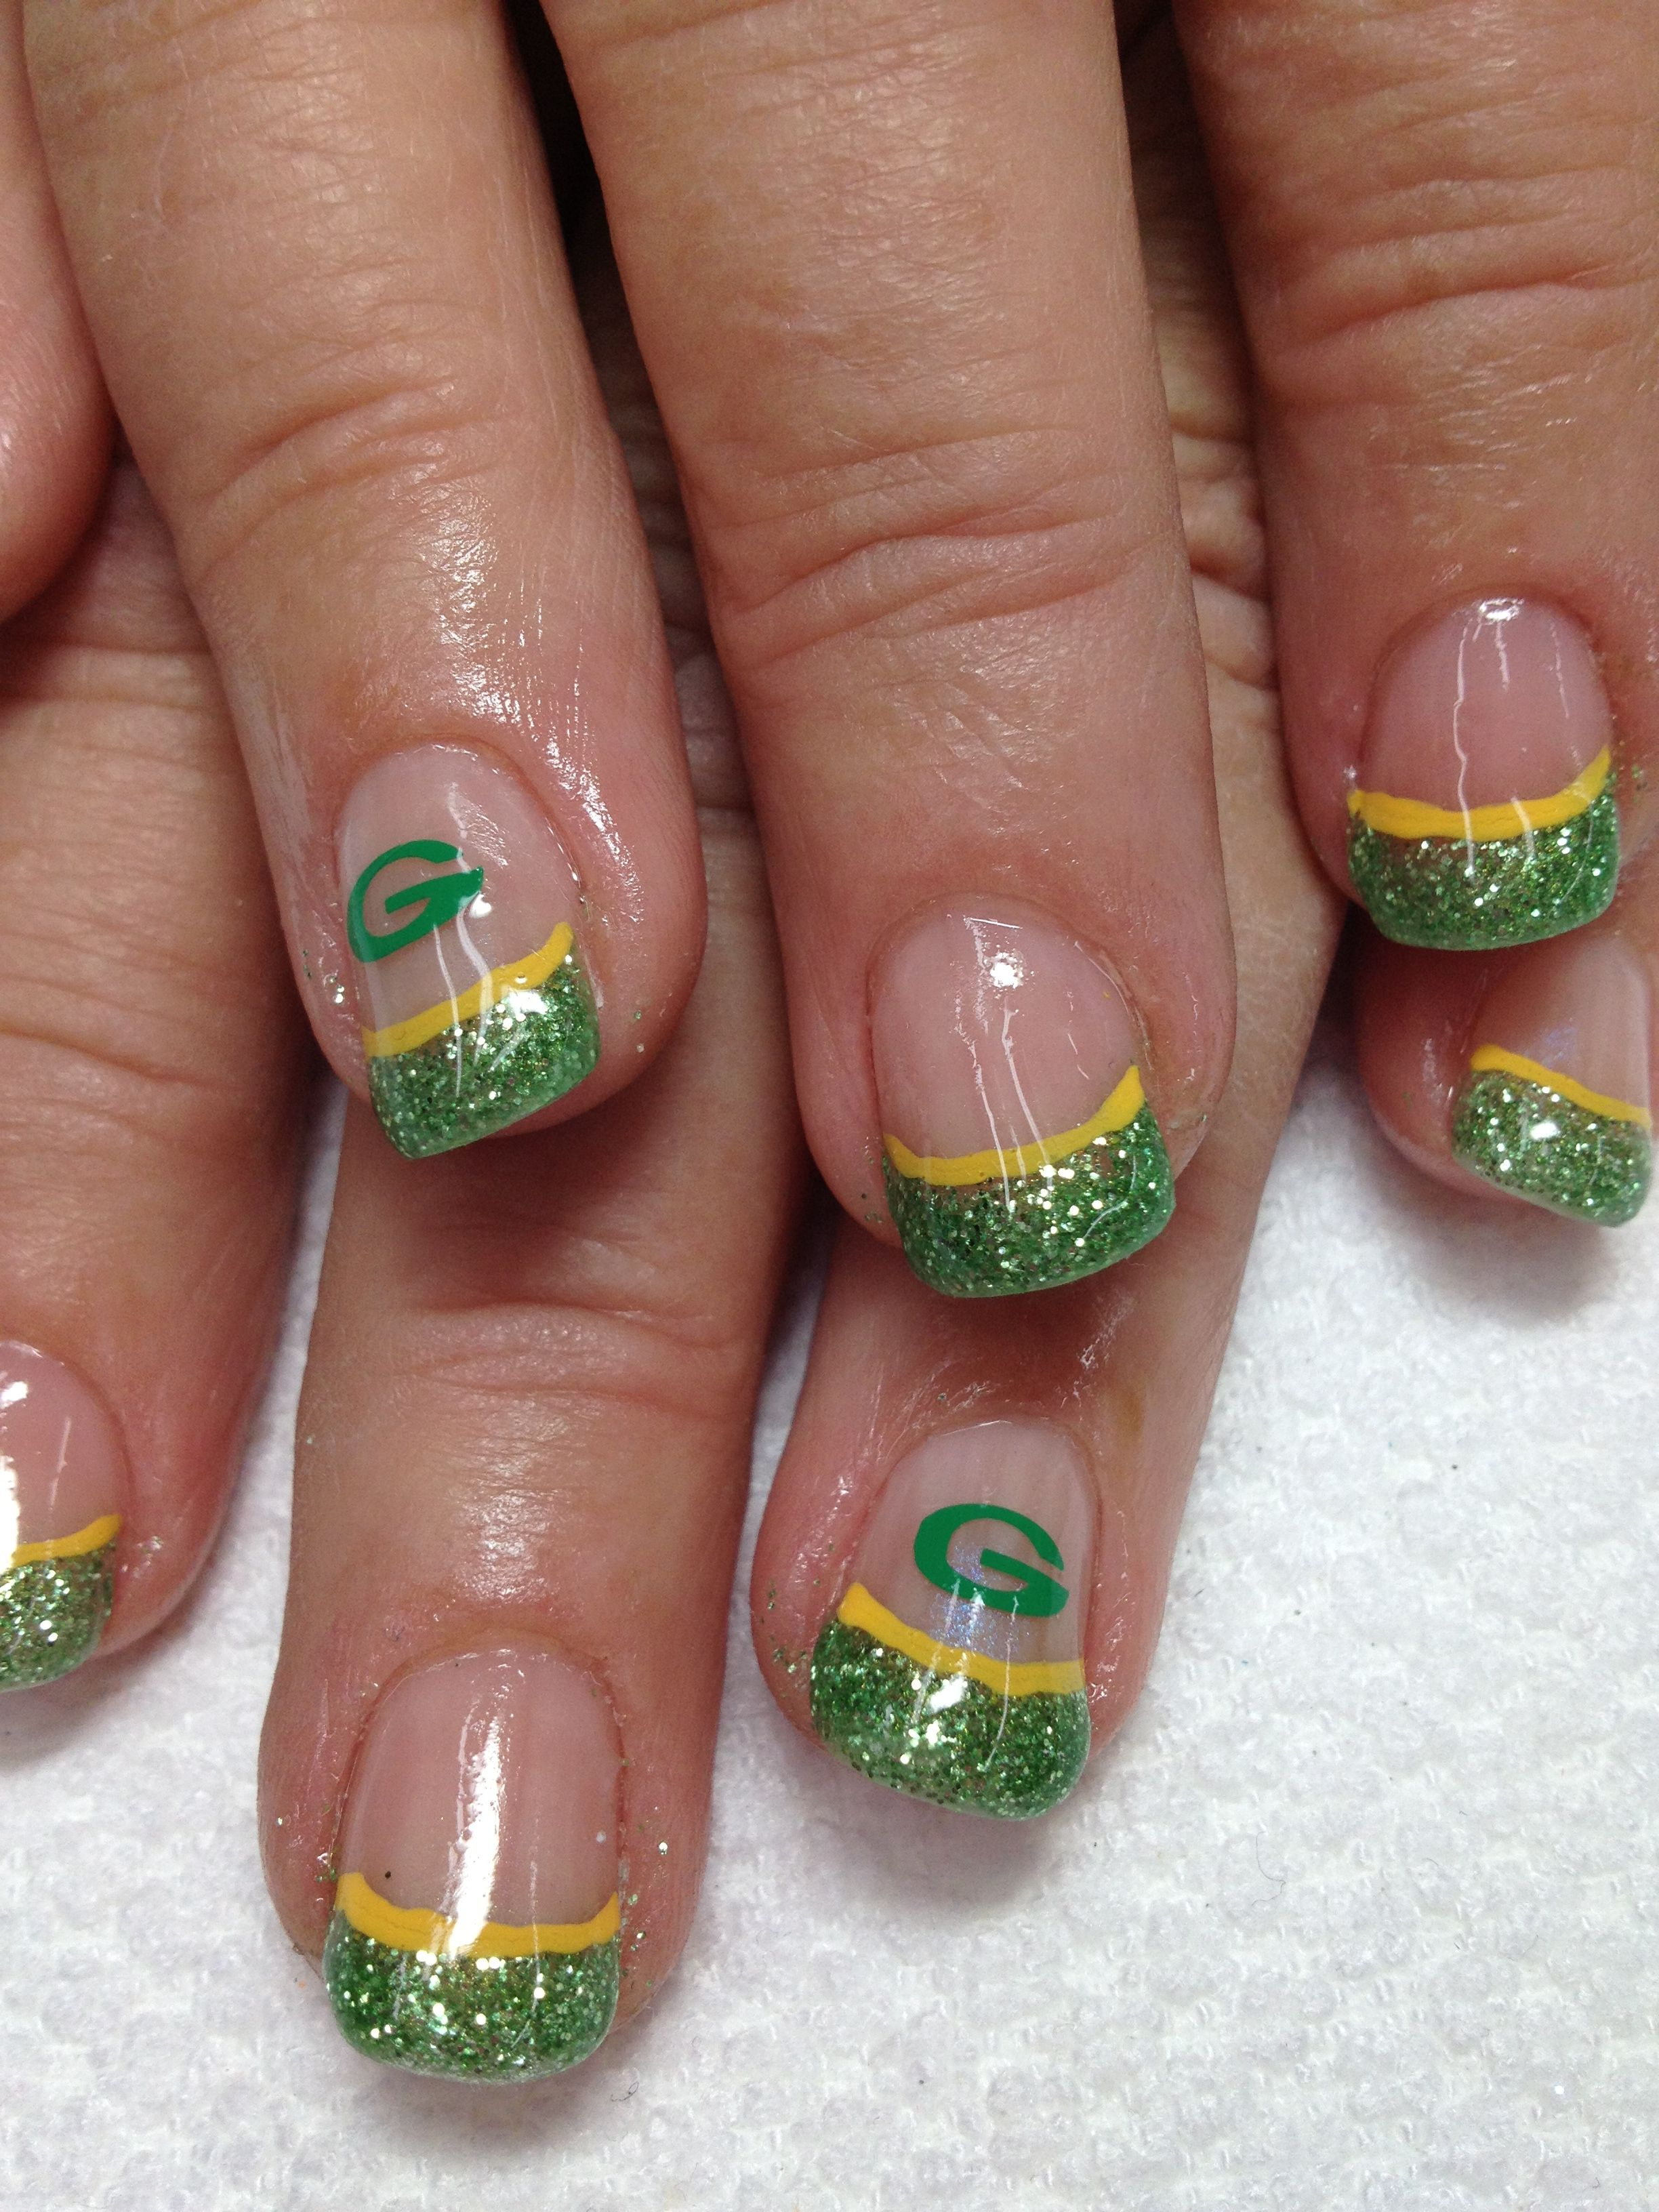 The First Set Of Packer Nails For The Season Very Pretty Green Glittered French Gel Nails Wi Green Bay Packers Nails Packer Nails Green Bay Packers Nail Art